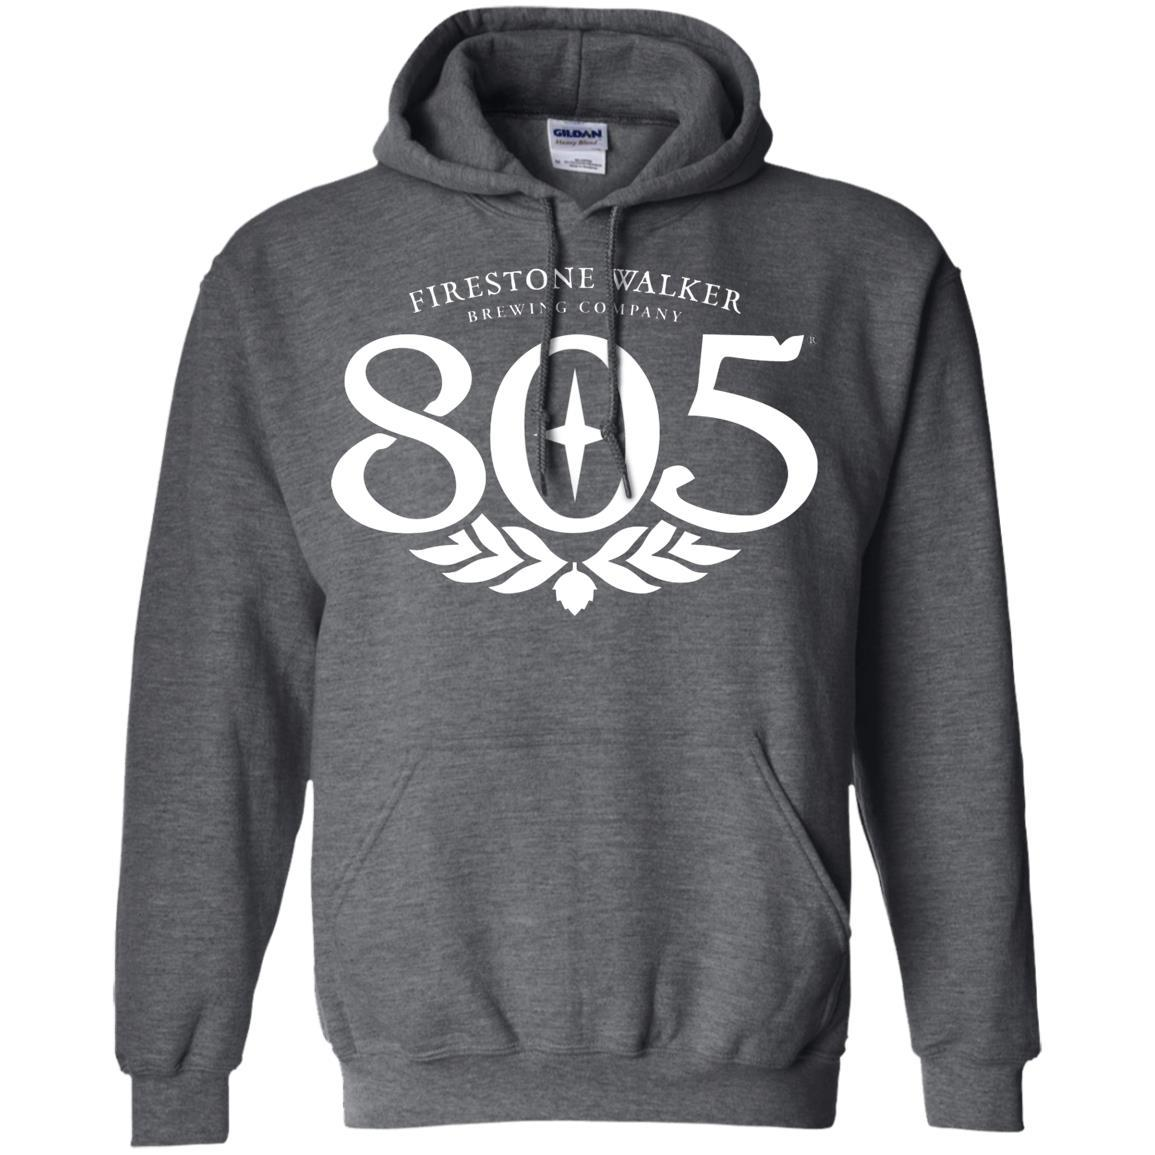 805 Beer T-Shirt Style / Color / Size